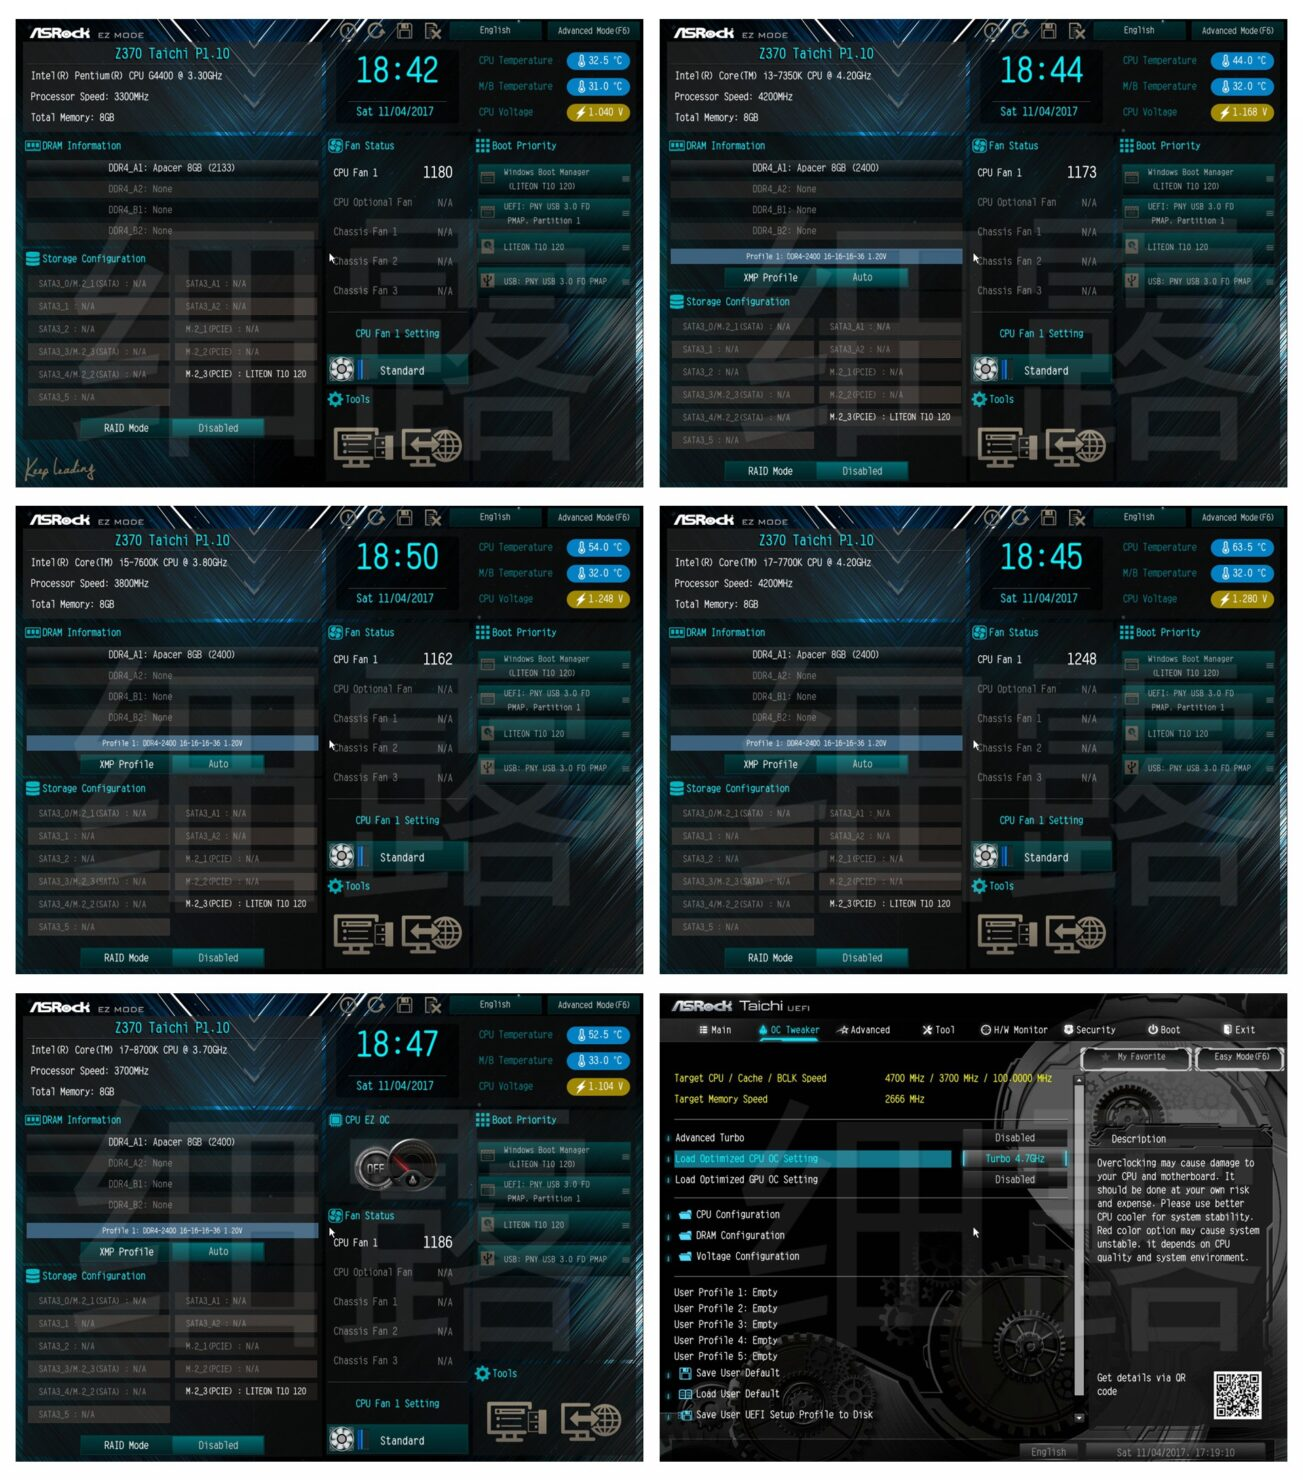 asrock-z370_6th-and-7th-gen-processors-support_1-2